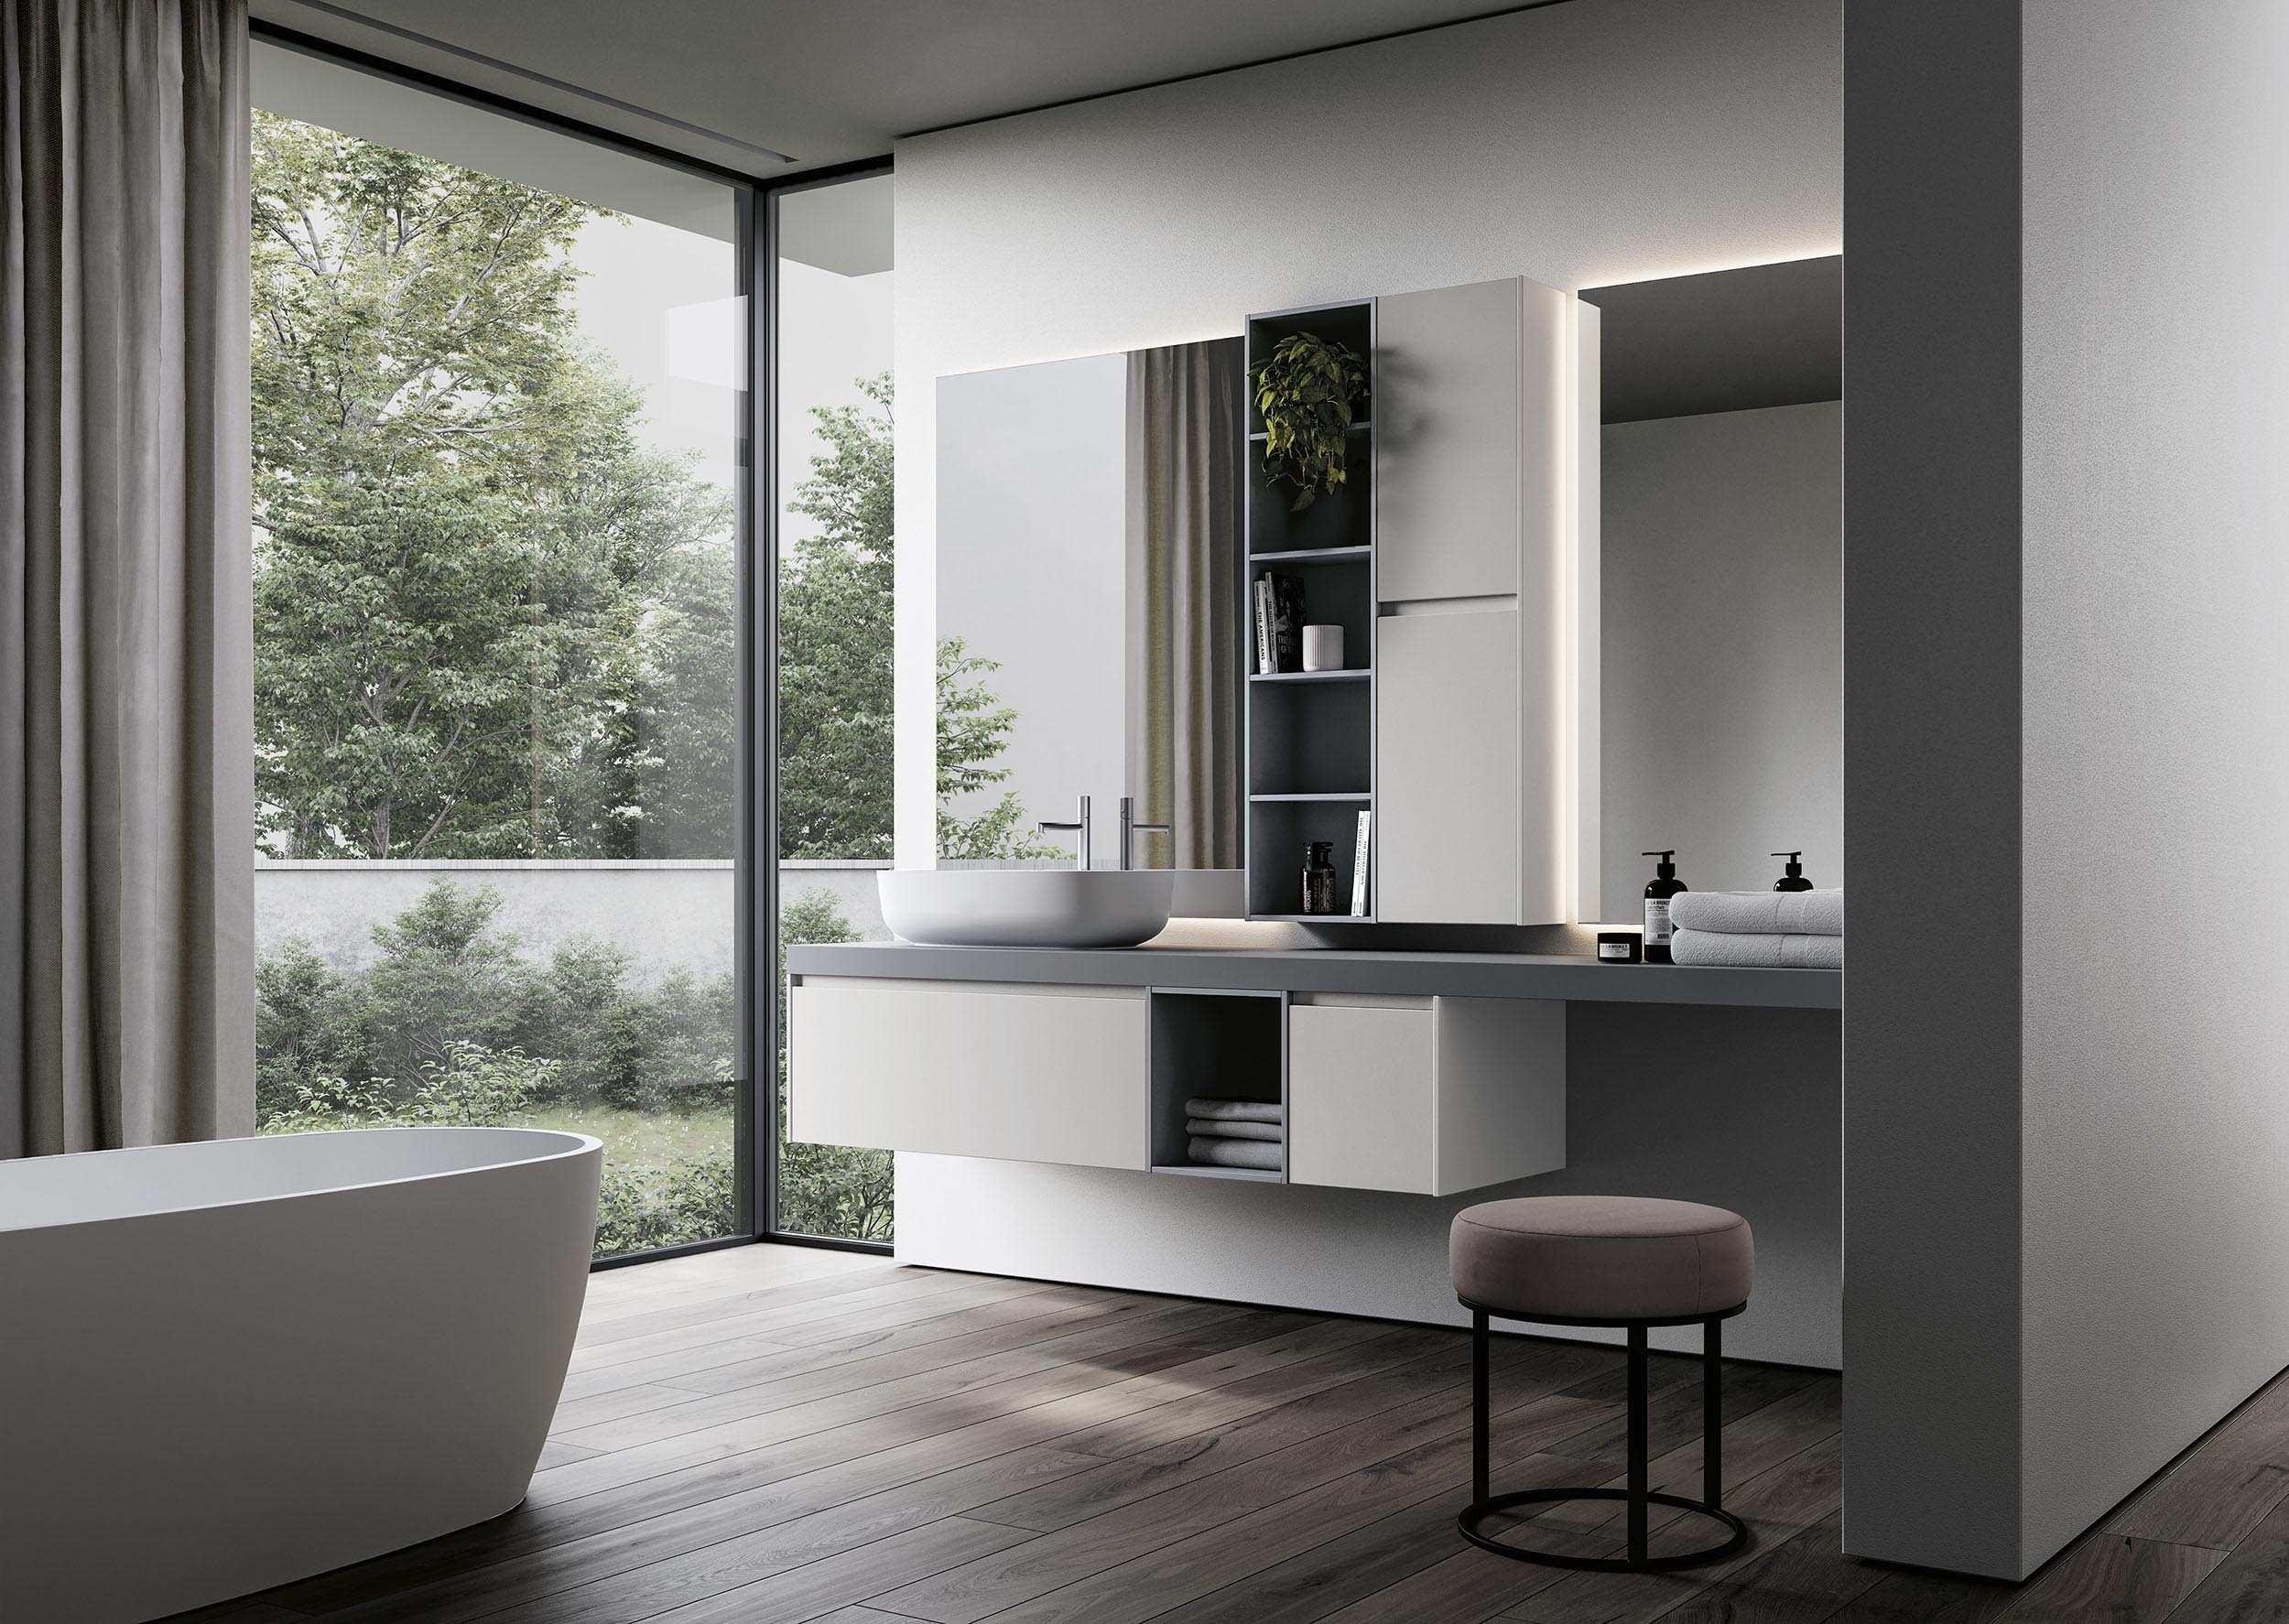 Enjoy modern bath cabinetry like this collection from Ideagroup